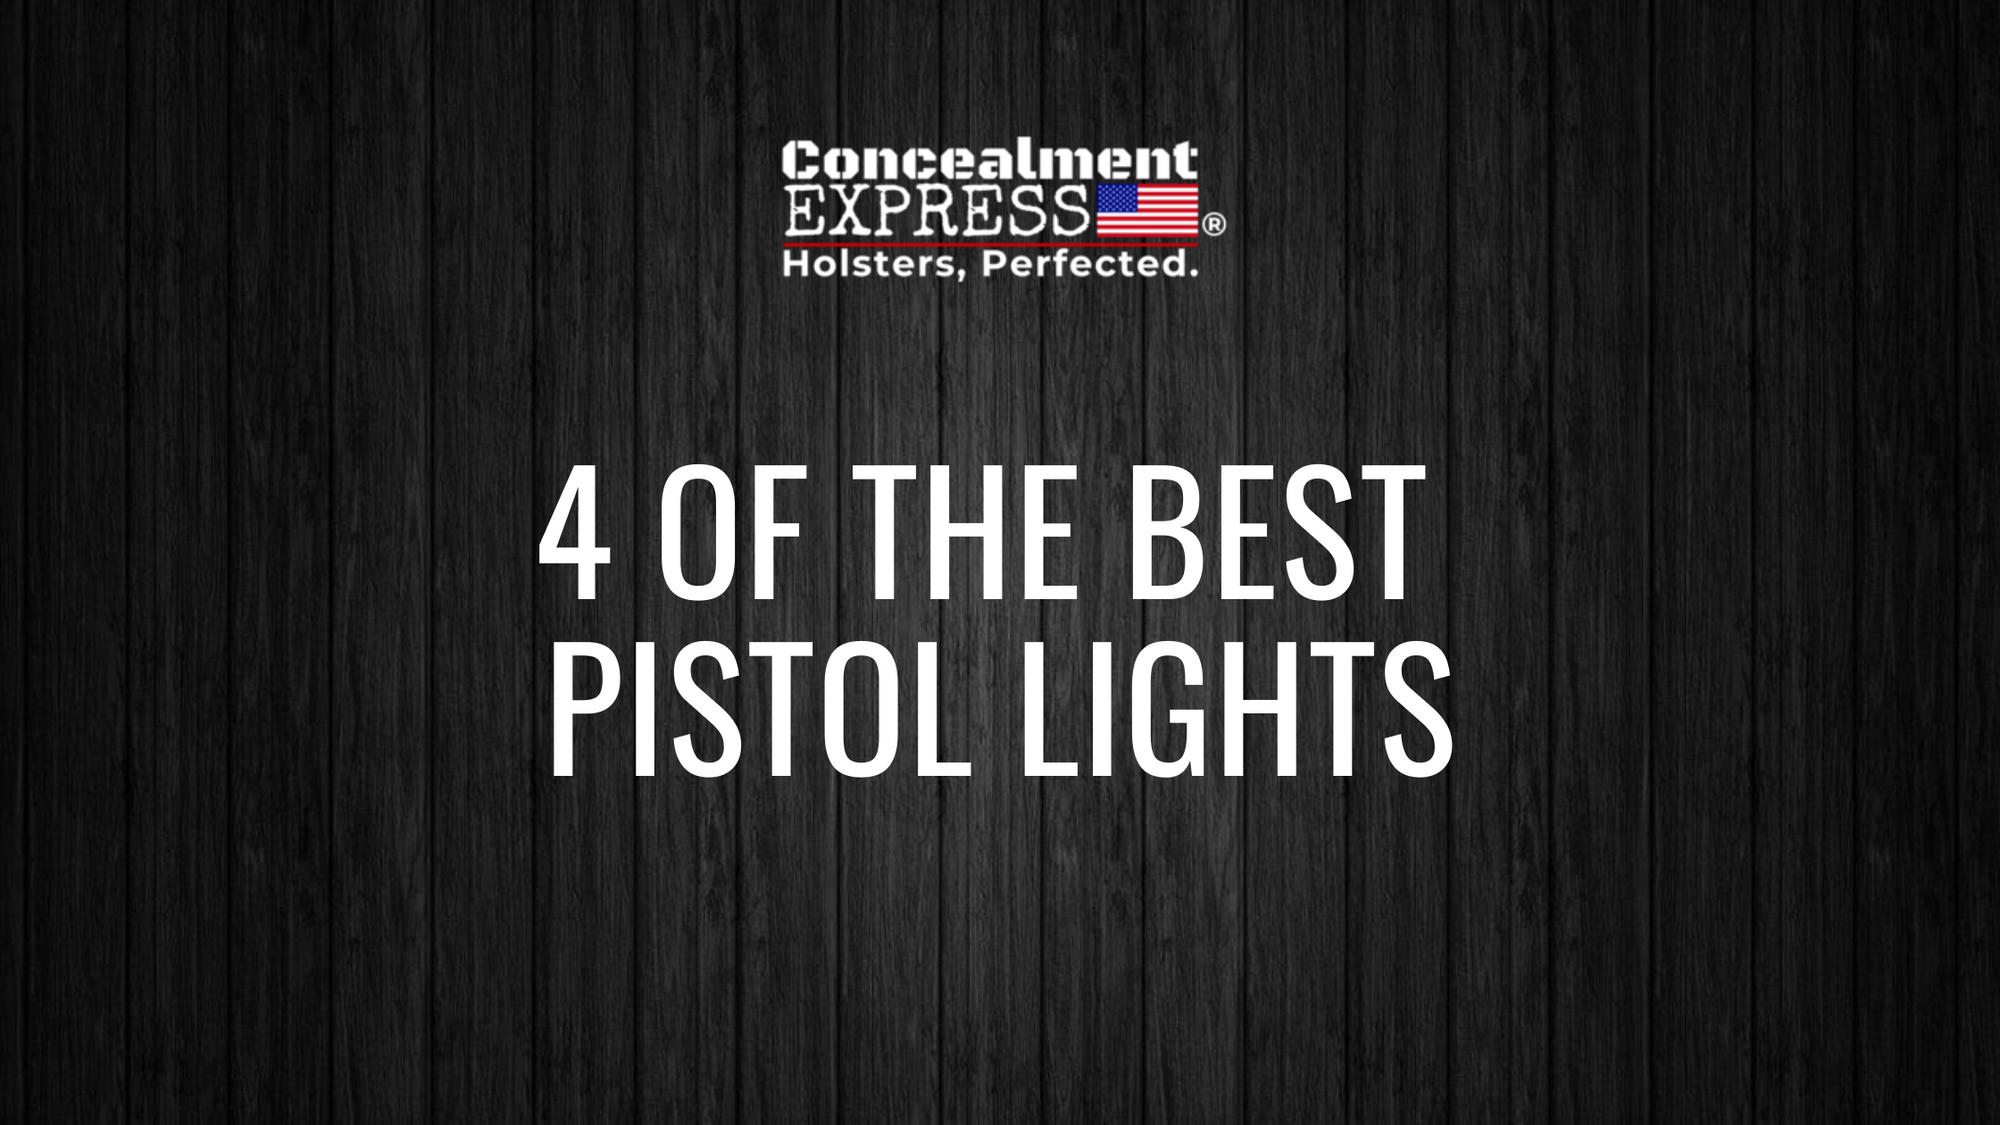 4 of the Best Pistol Lights